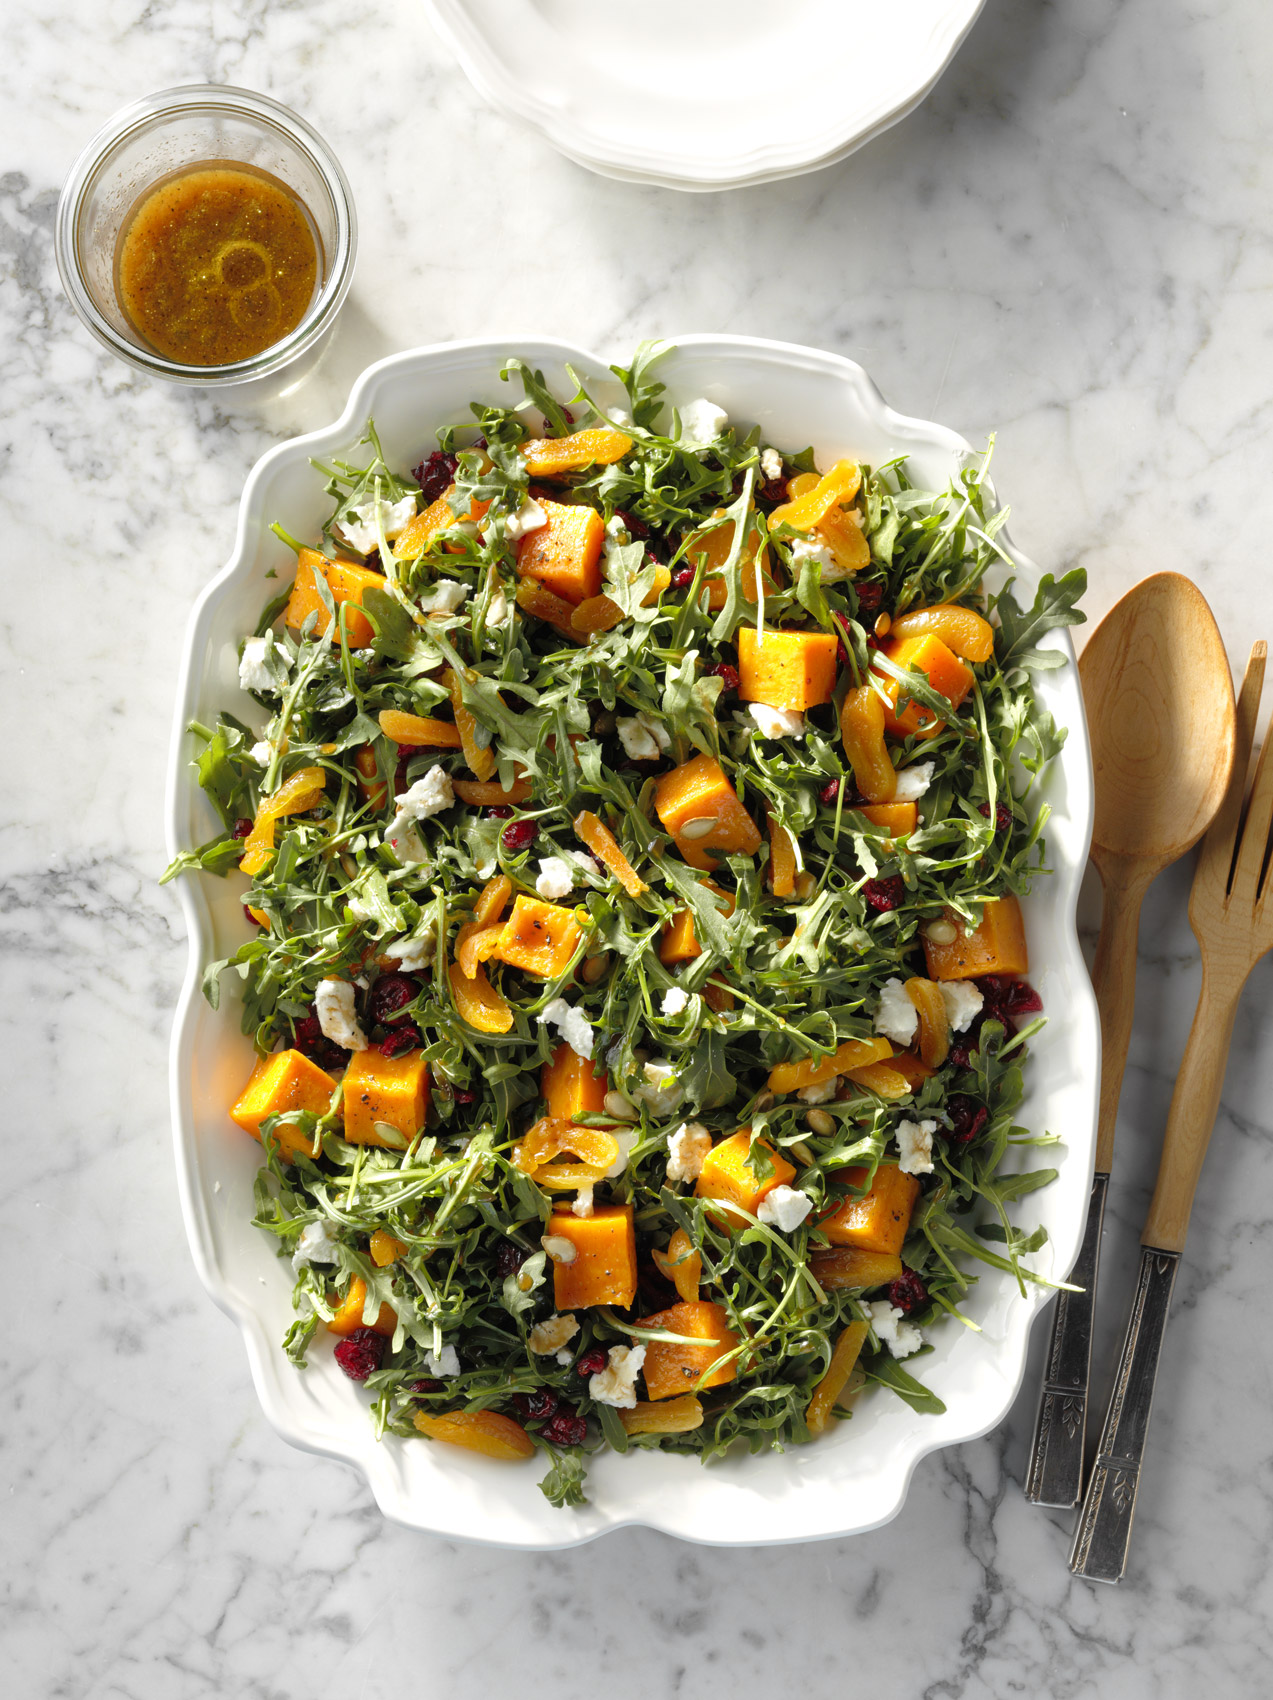 Roasted Pumpkin Salad with Orange Dressing photo by Chris Kessler Photography.  Chris Kessler is a freelance Photographer based in Milwaukee Wisconsin. Specializing in Food photography and portraiture.